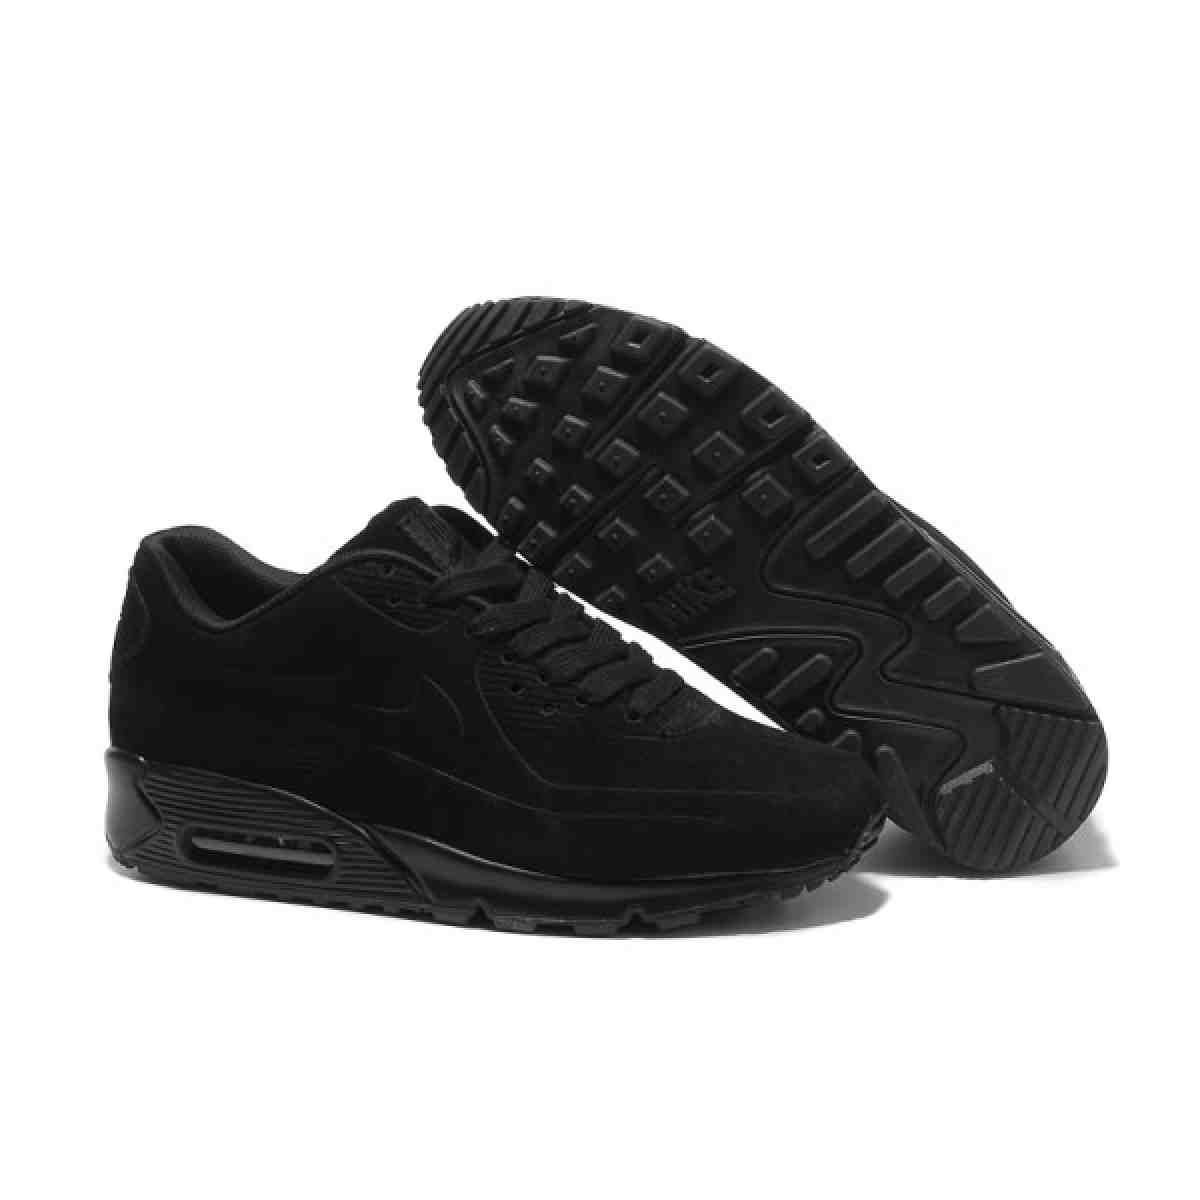 new arrival ae4c5 2027c Black Tennis Shoes for Girls